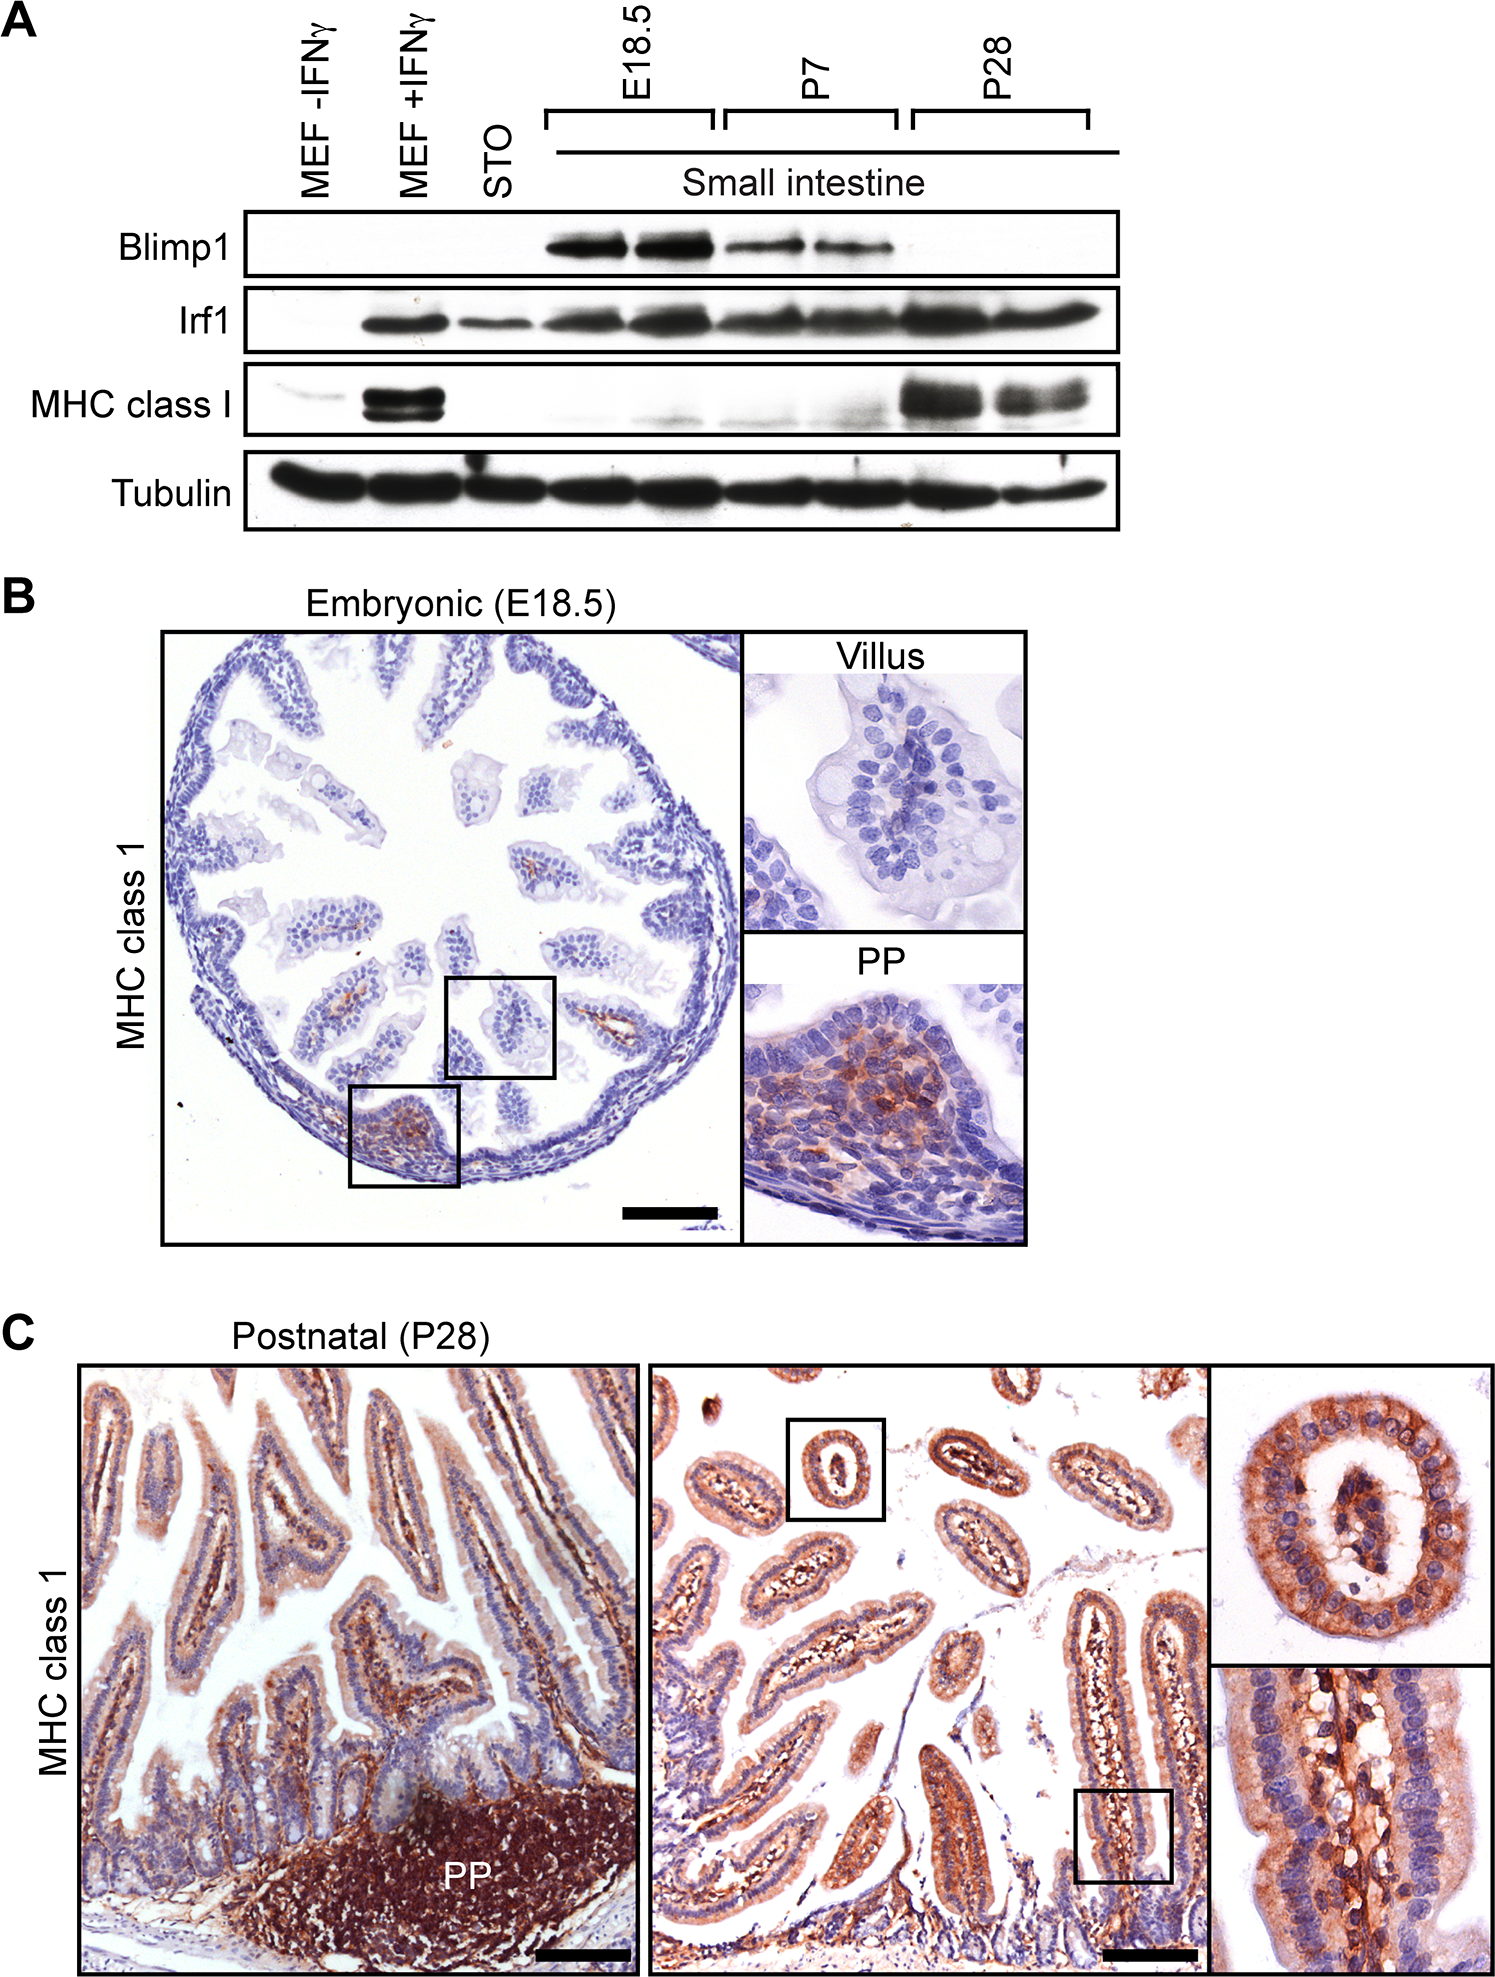 The onset of MHC class I expression coincides with down-regulated Blimp1 expression during the suckling to weaning transition.